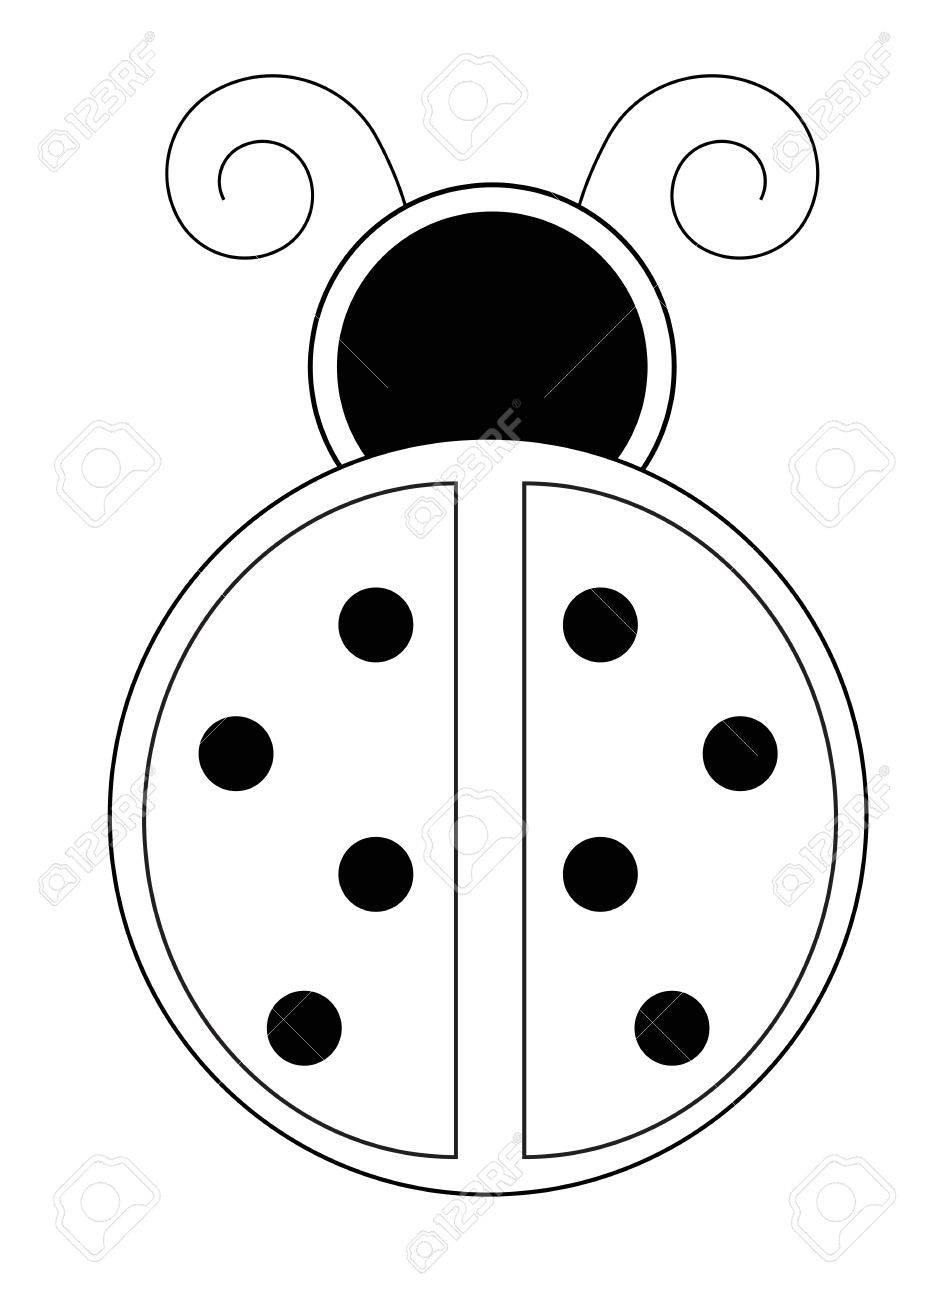 Ladybug Coloring Page Royalty Free Cliparts, Vectors, And Stock ...